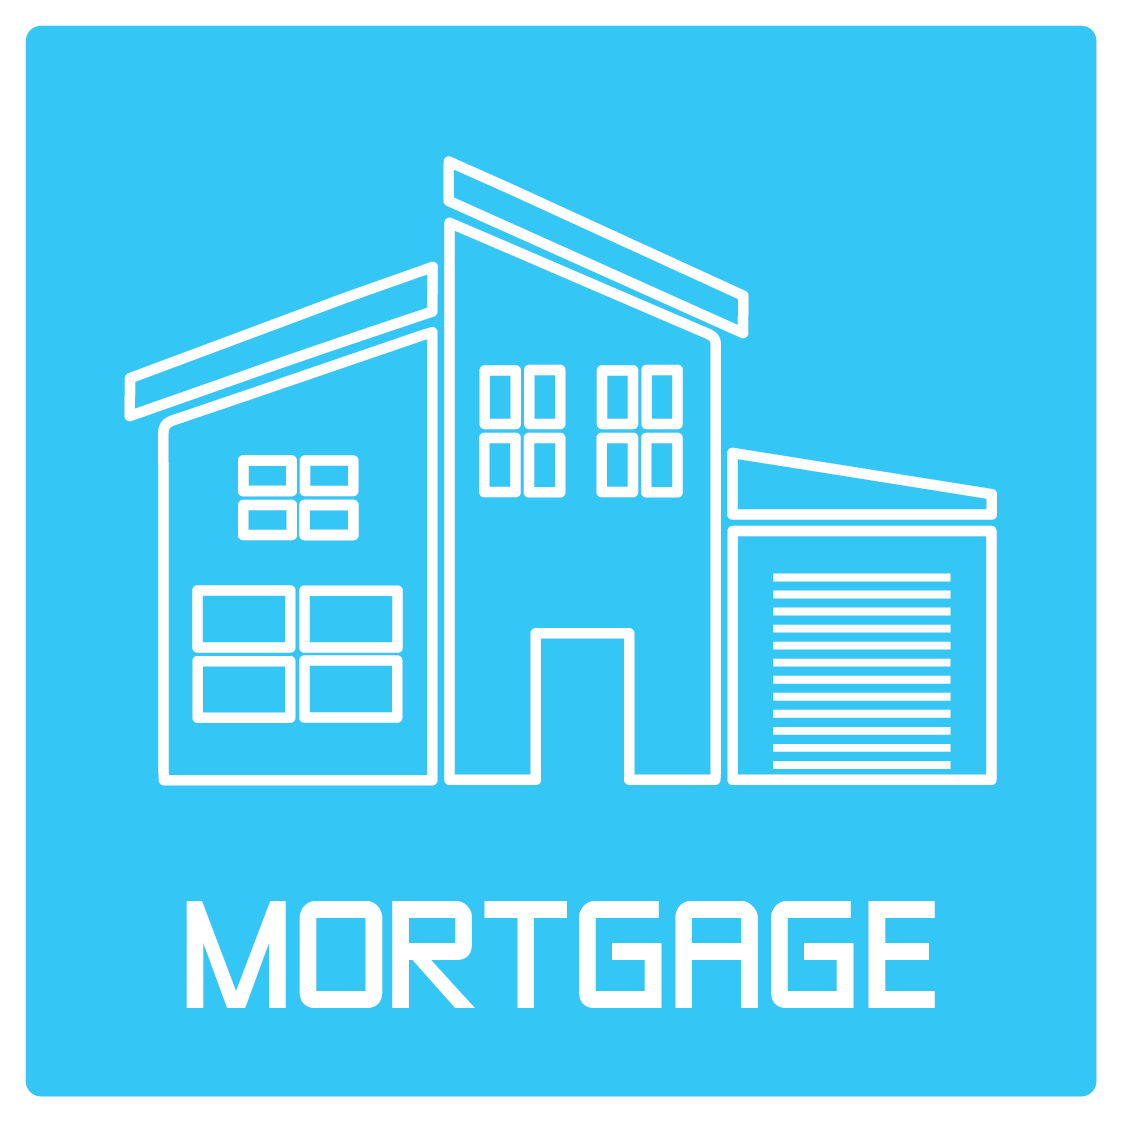 Icon and Text: Mortgage